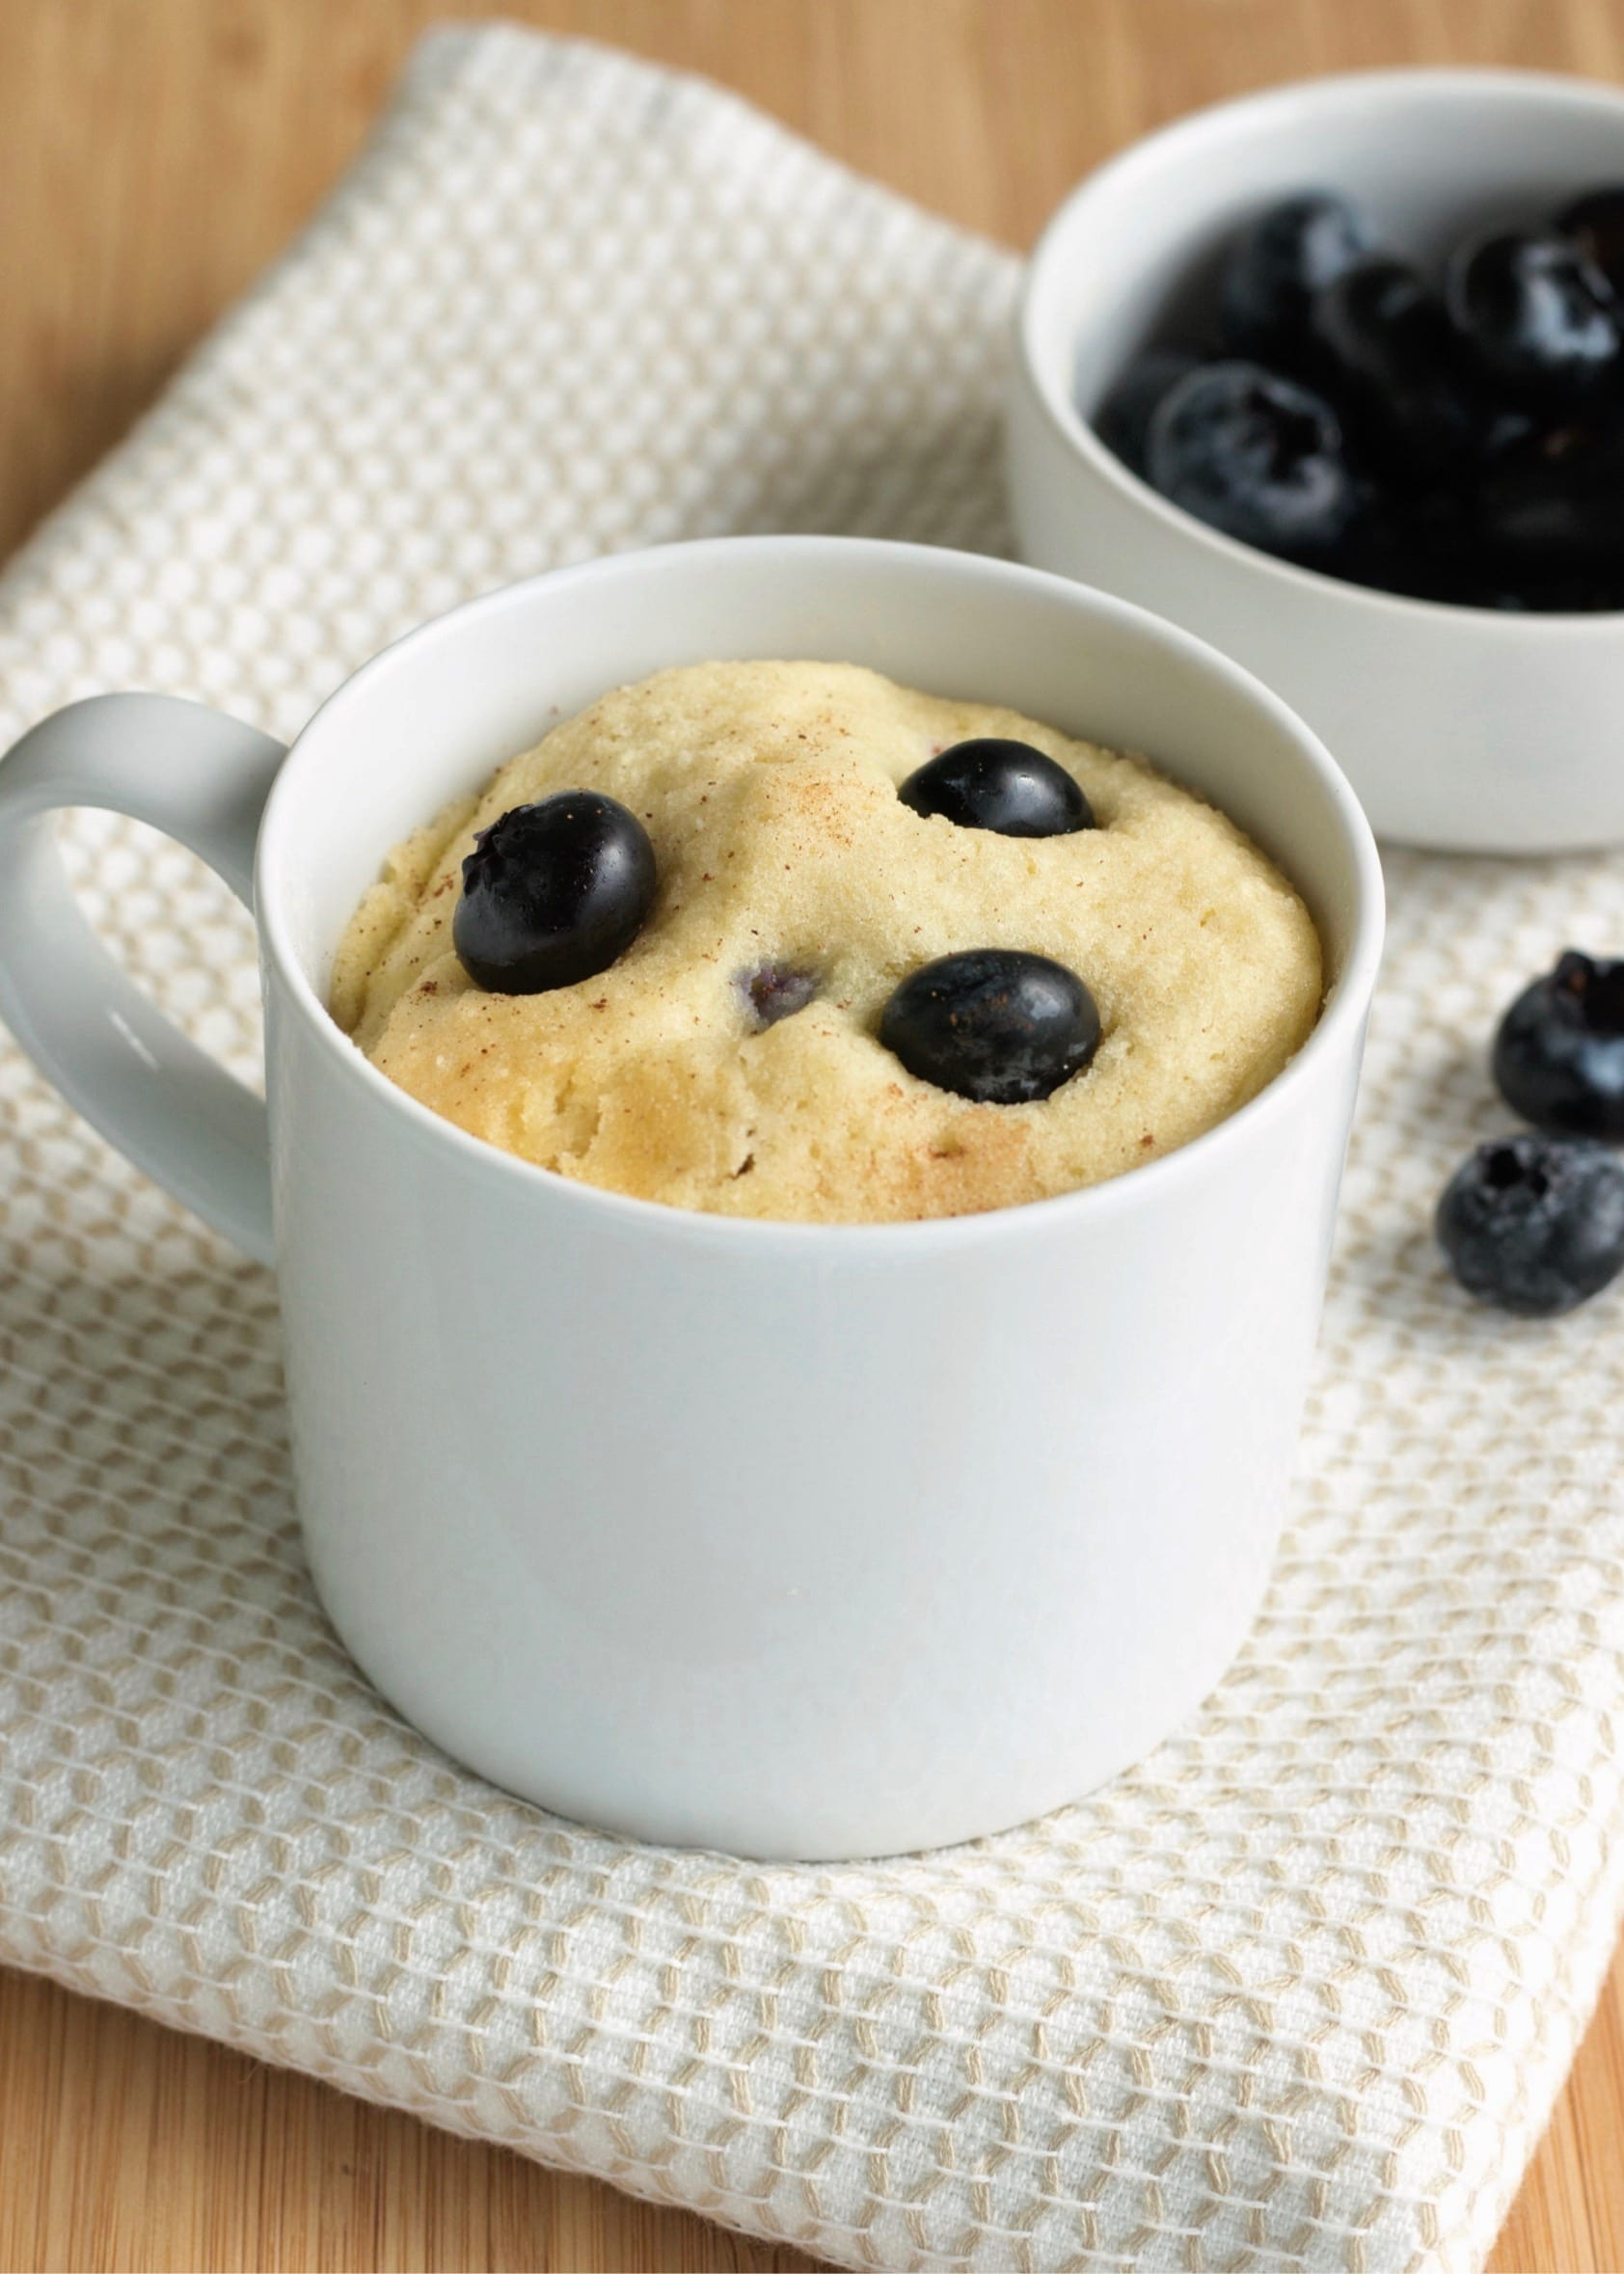 Keto blueberry muffin recipe that you make in a mug.